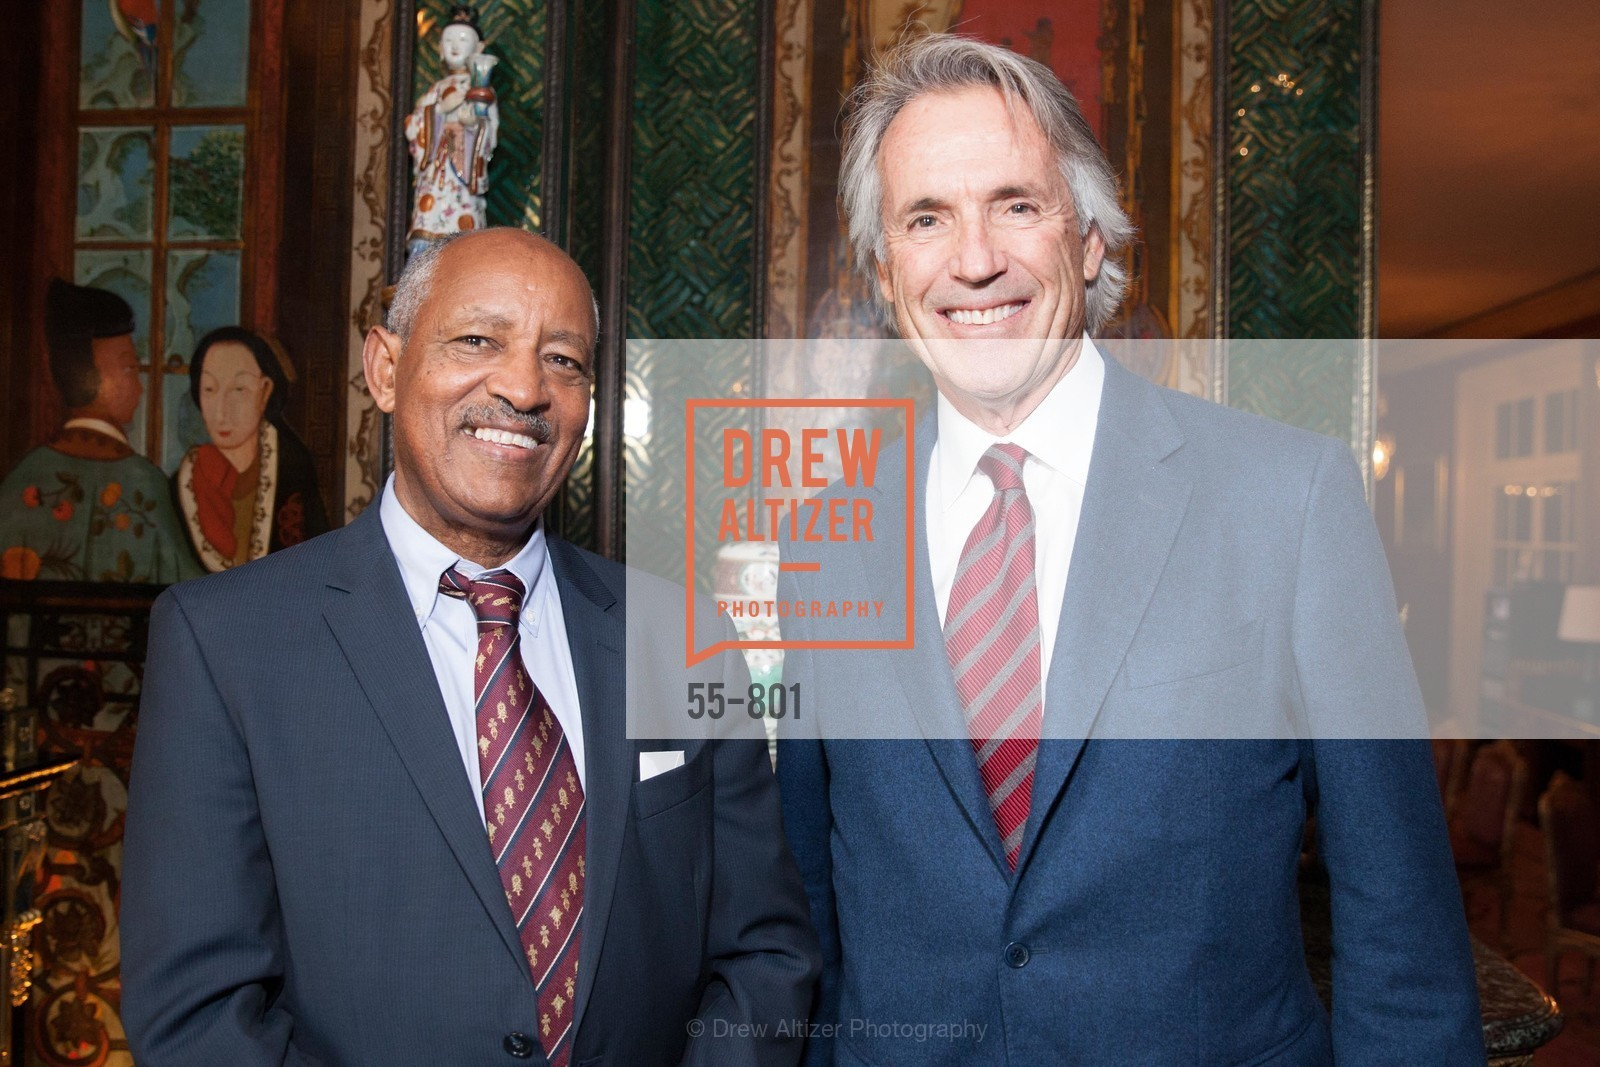 Derhame Asfaw, Bill Wirthlin, GETTY Hosts Leakey Foundation Dinner, US, April 23rd, 2015,Drew Altizer, Drew Altizer Photography, full-service agency, private events, San Francisco photographer, photographer california